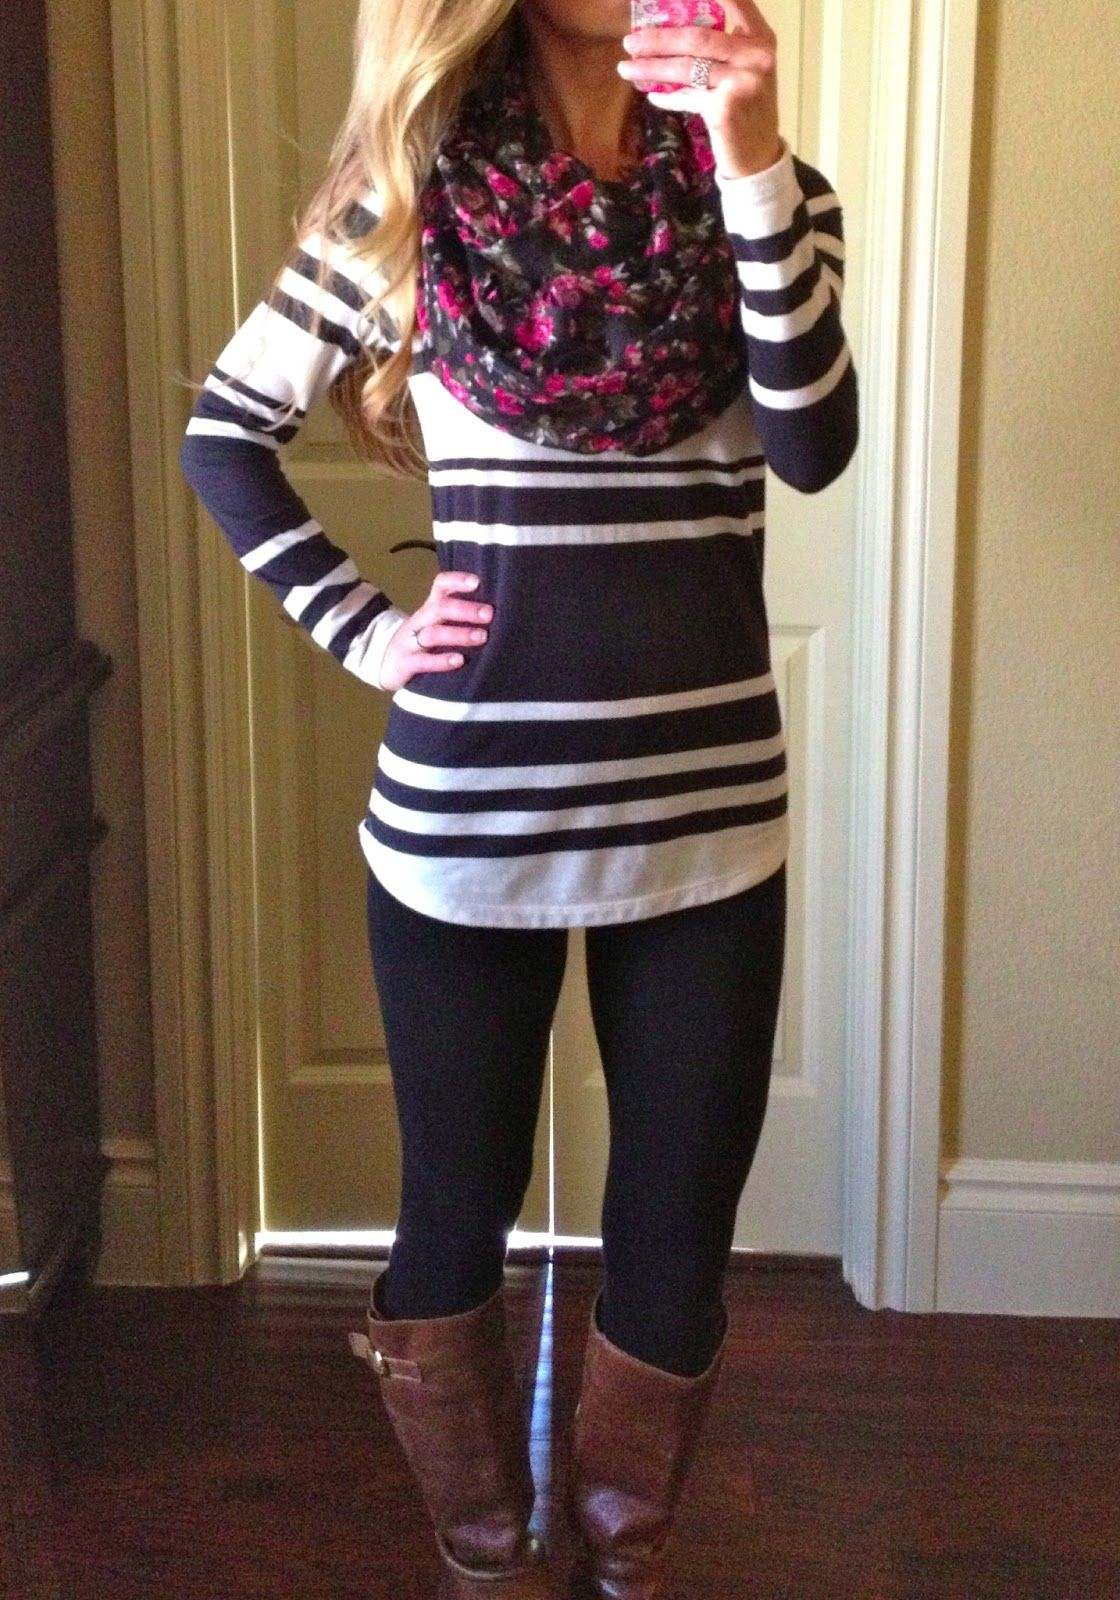 Forever 21 leggings, Old Navy stripe boat neck top, Target floral print  infinity scarf, Steve Madden Cognac Boots. Lovin' the stripes & floral.